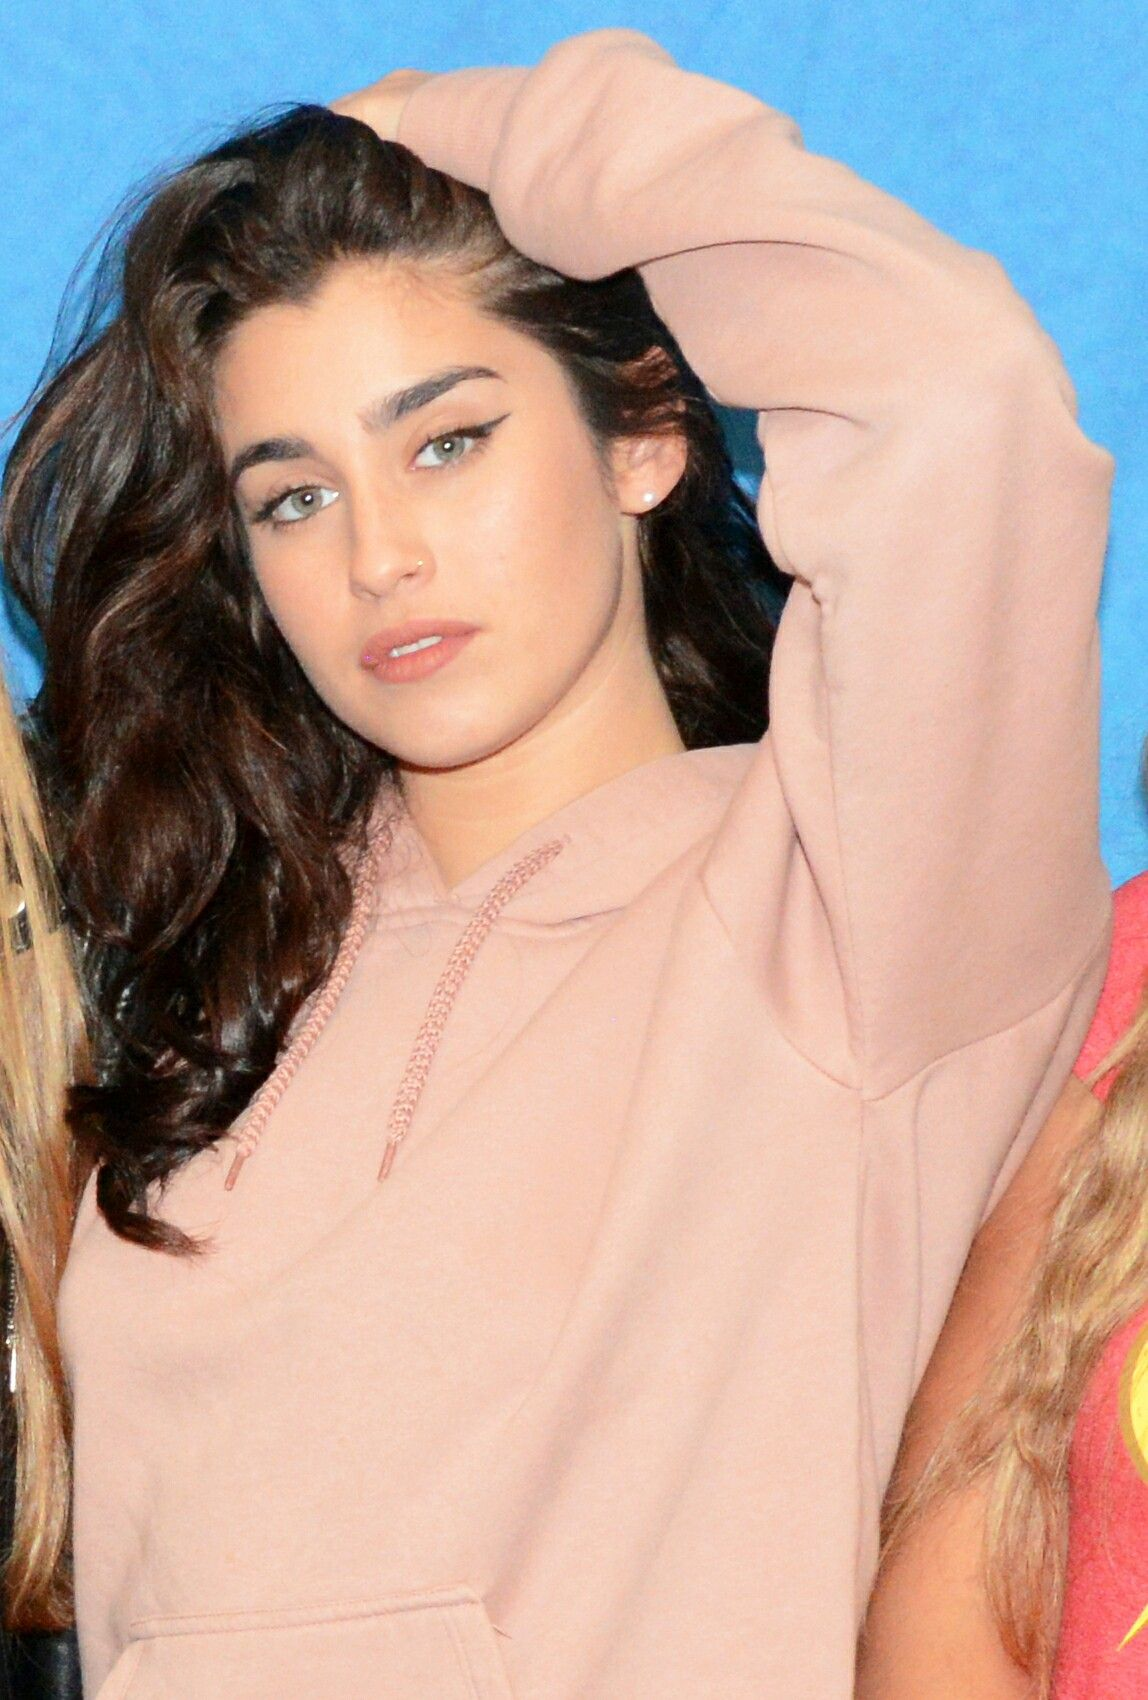 Lauren Meet & Greet - Manchester, UK - 10/7 | Lauren ...